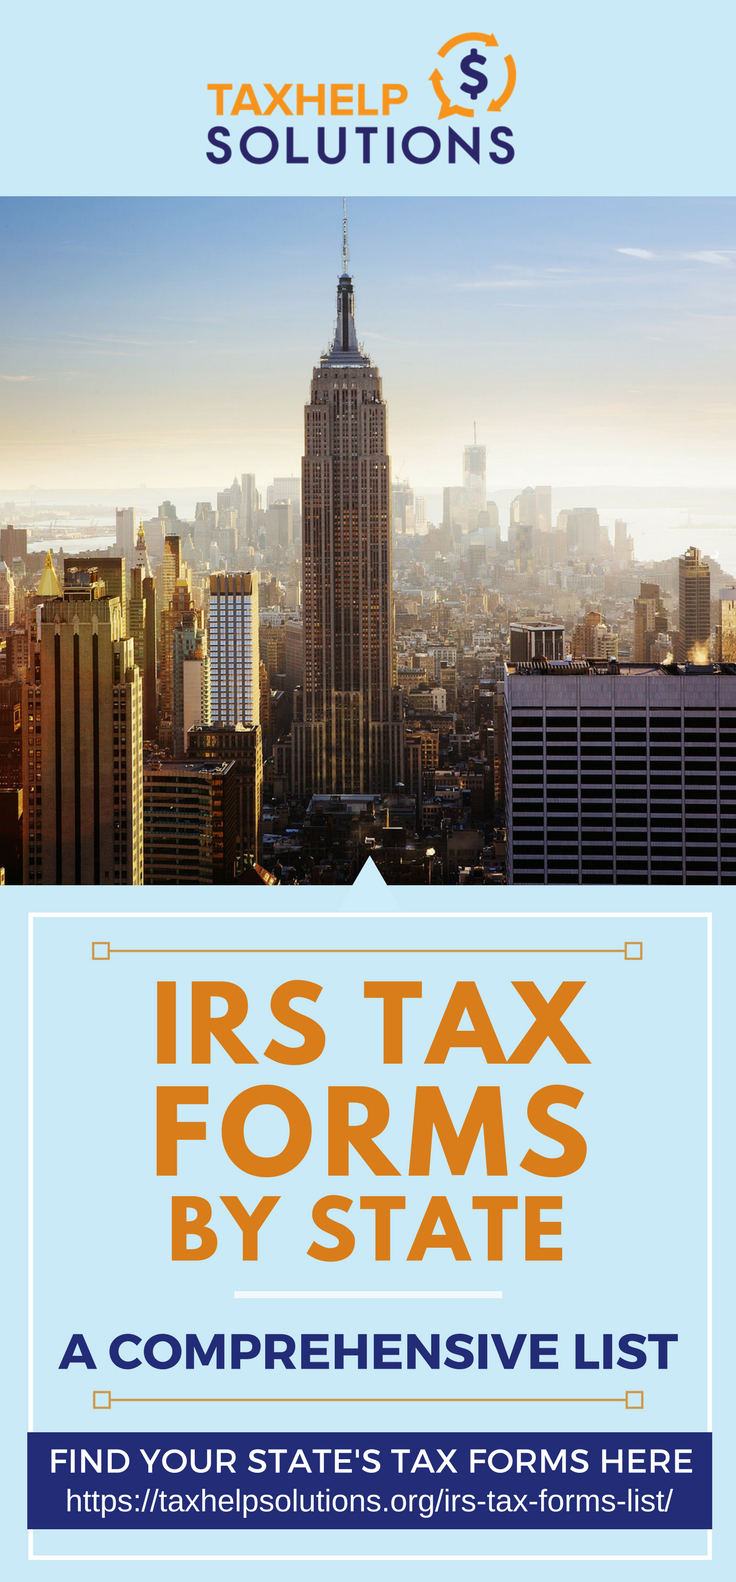 IRS Tax Forms by State Irs tax forms, Irs taxes, Tax forms